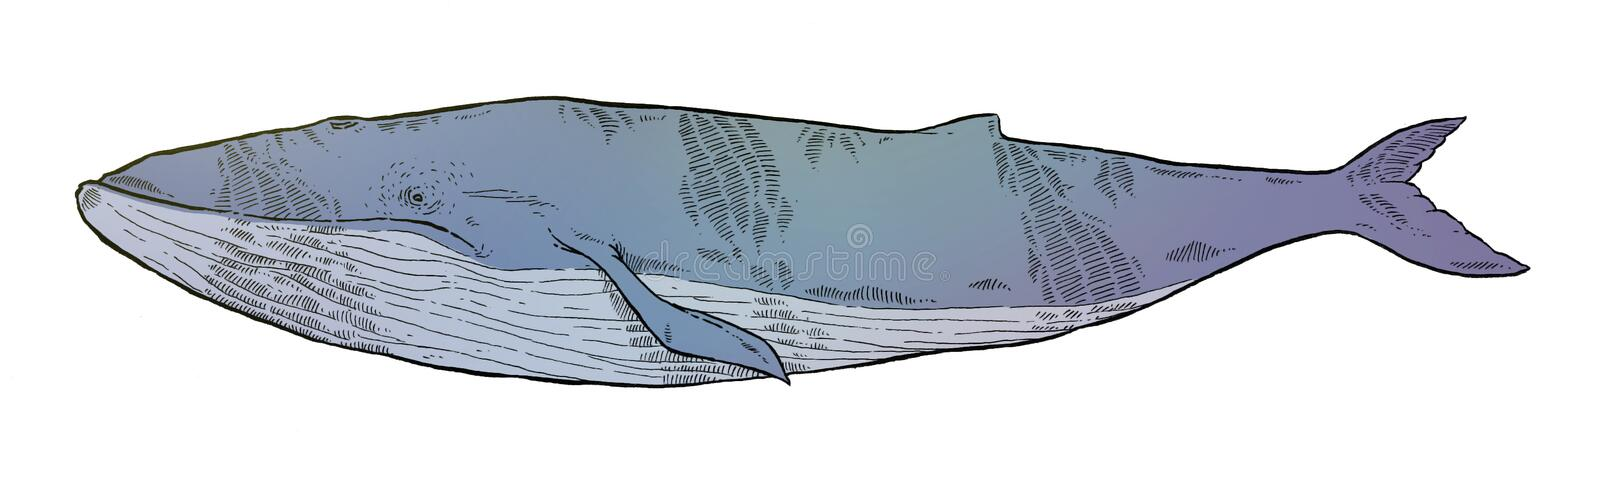 Whale stock illustration